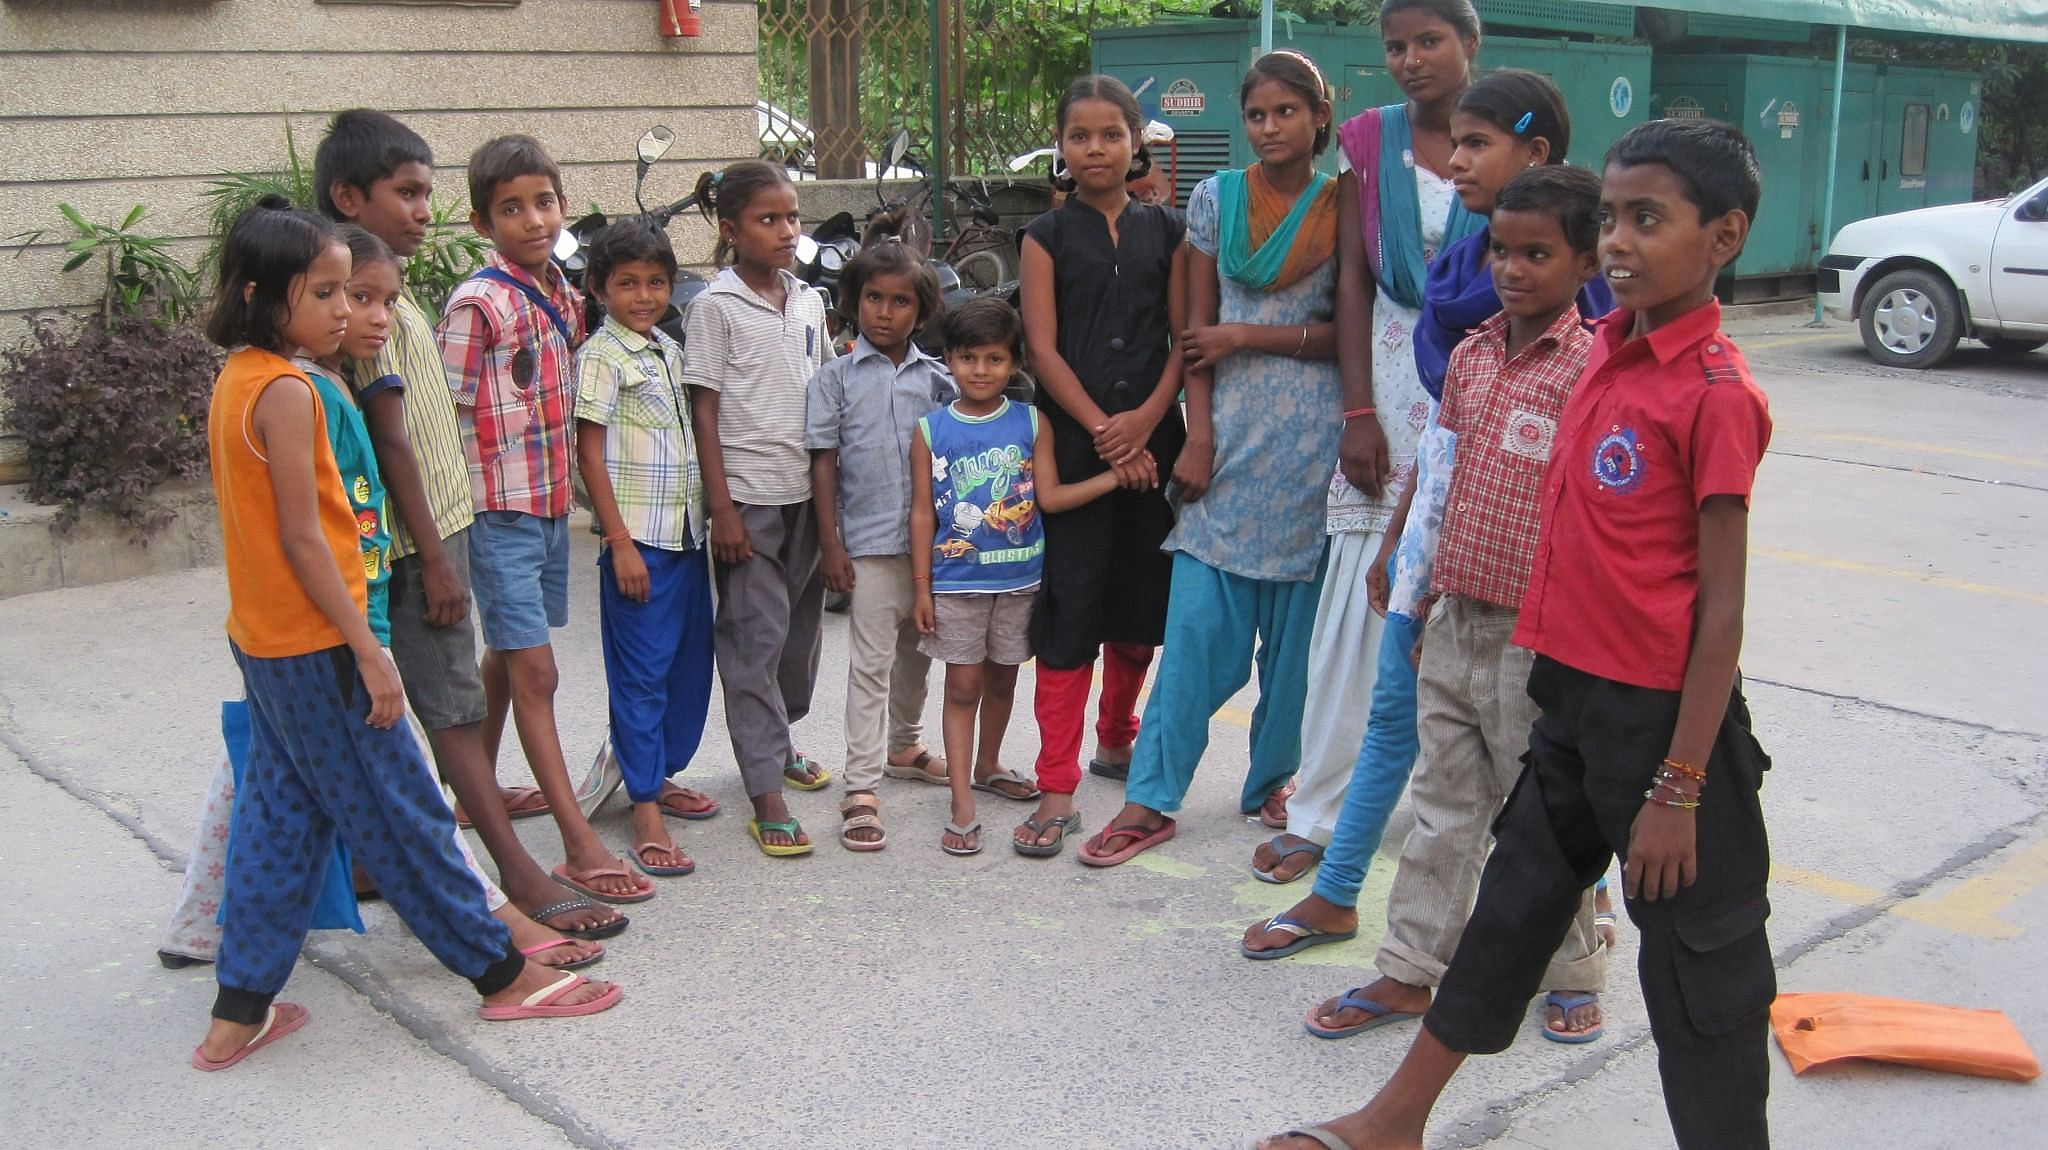 The kids show off their brand new chappals